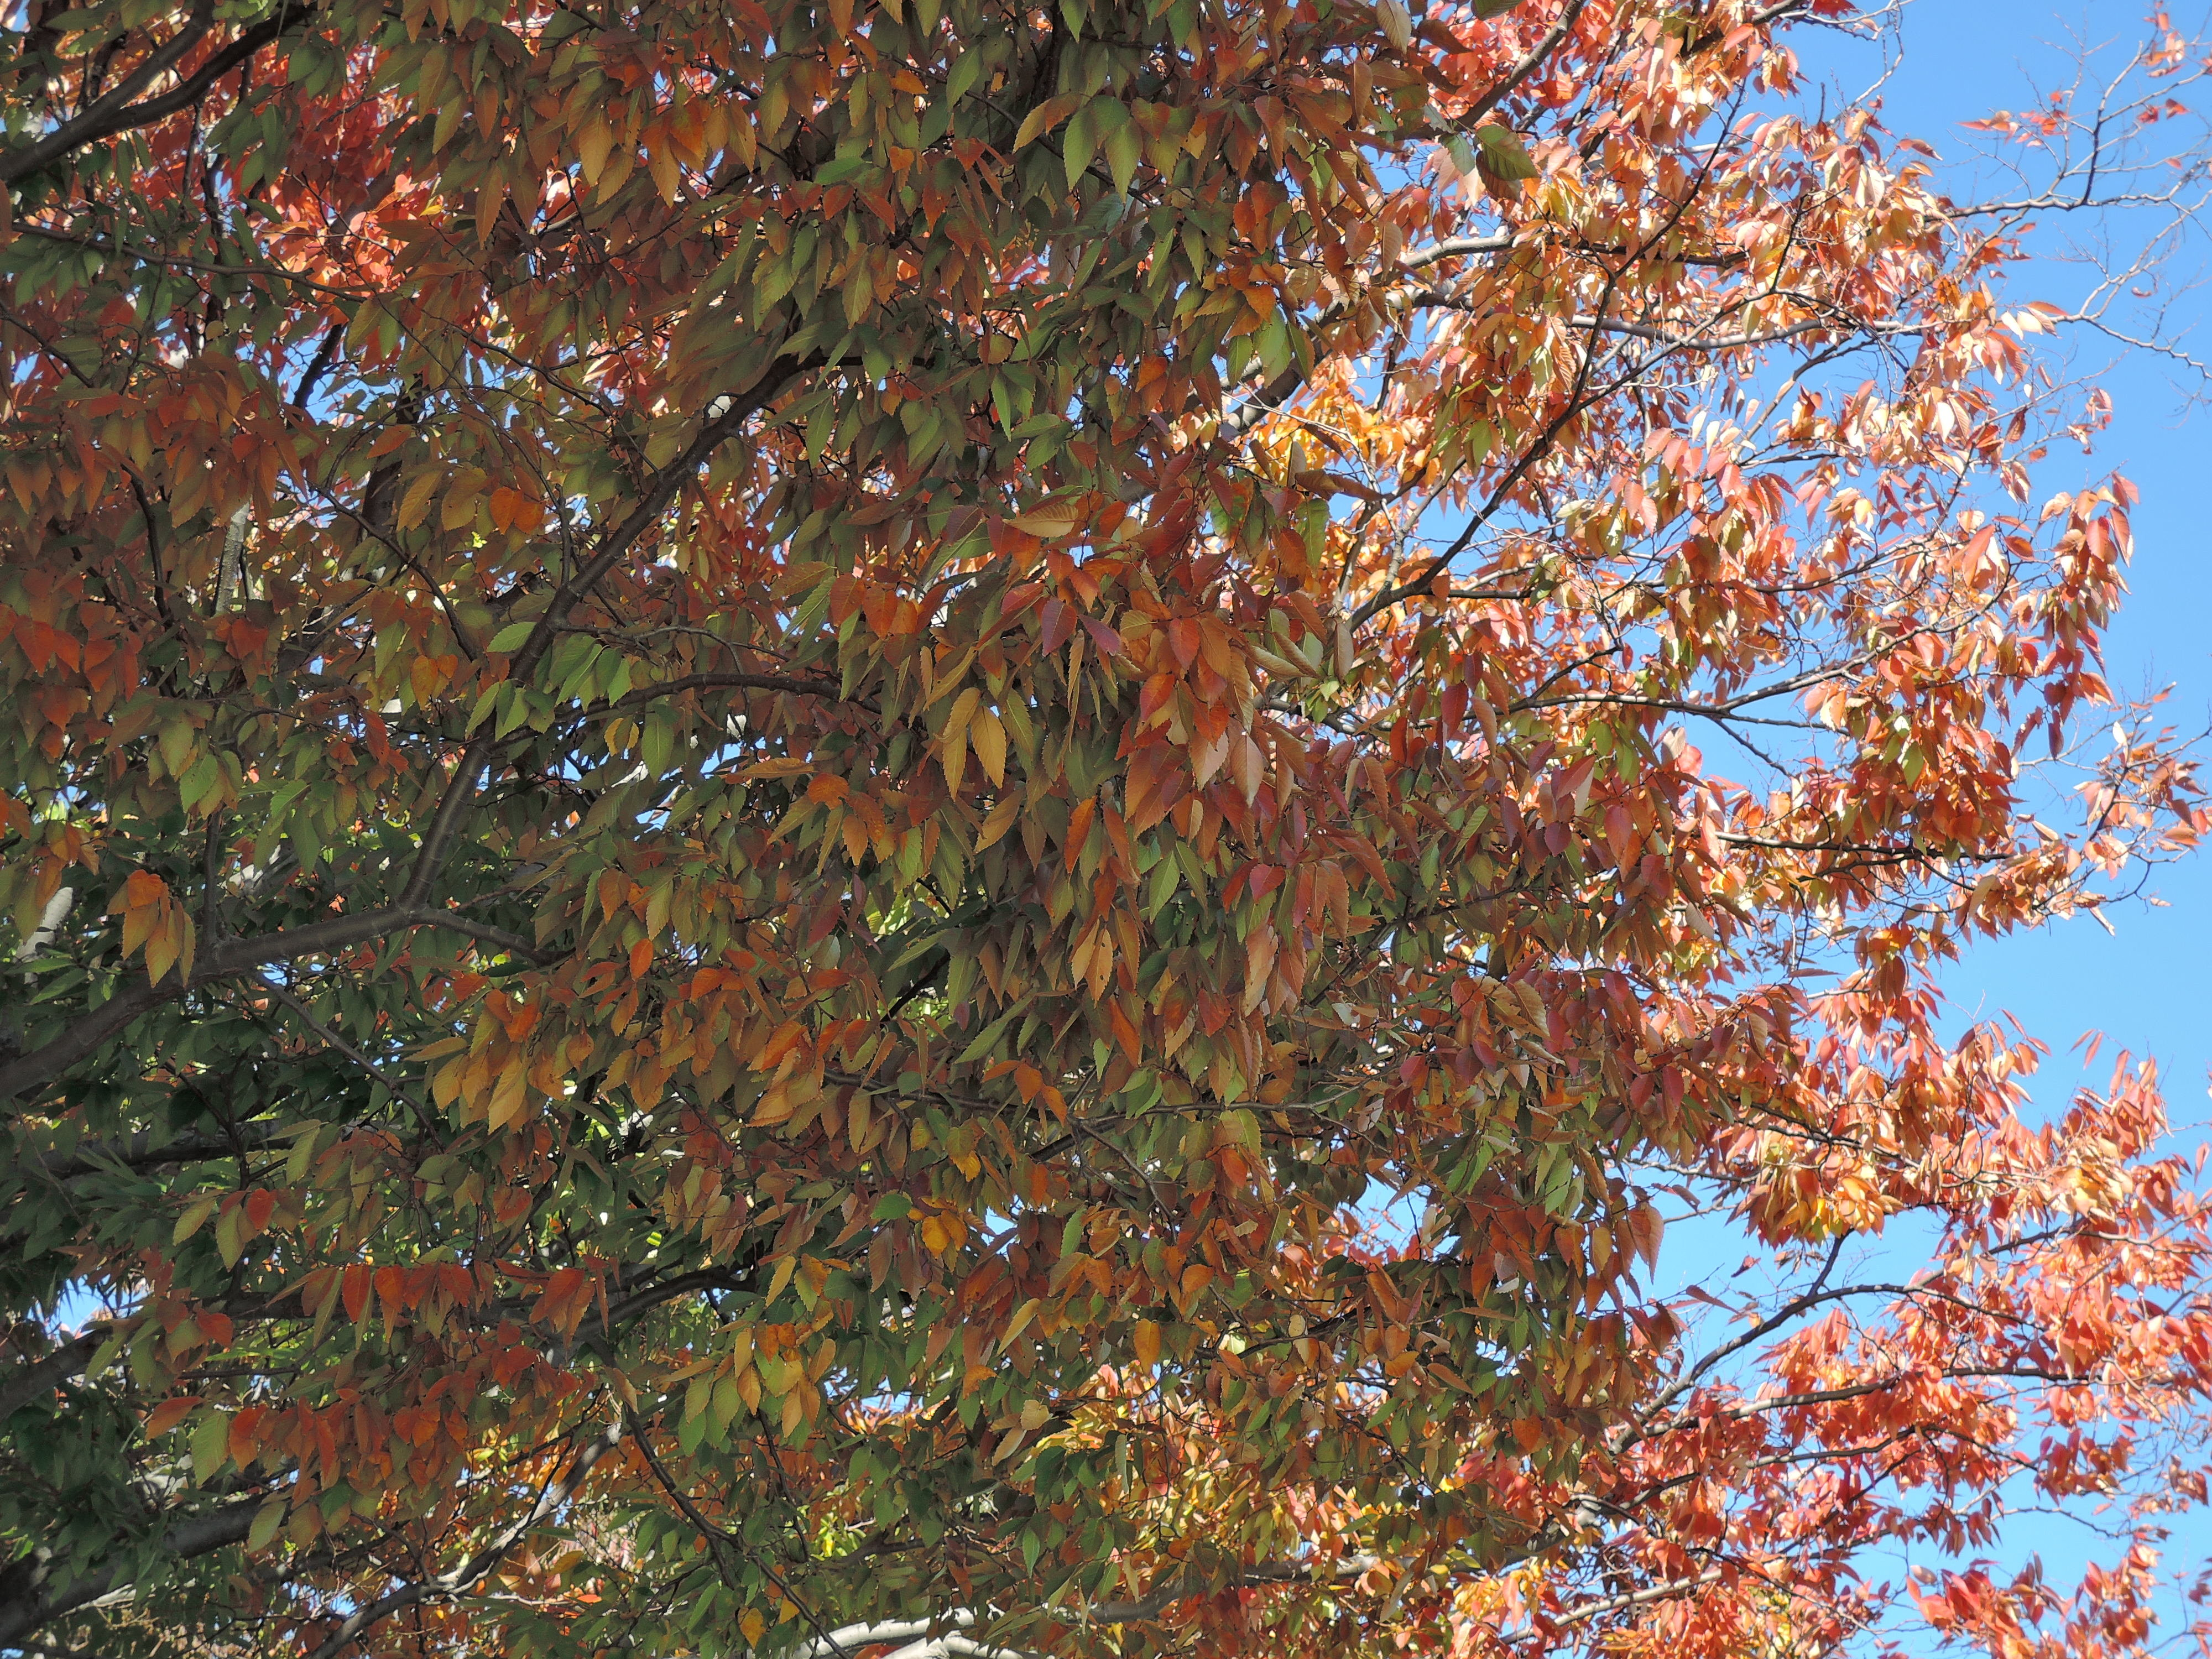 A sample photo of leaves taken by the Nikon Coolpix P340.